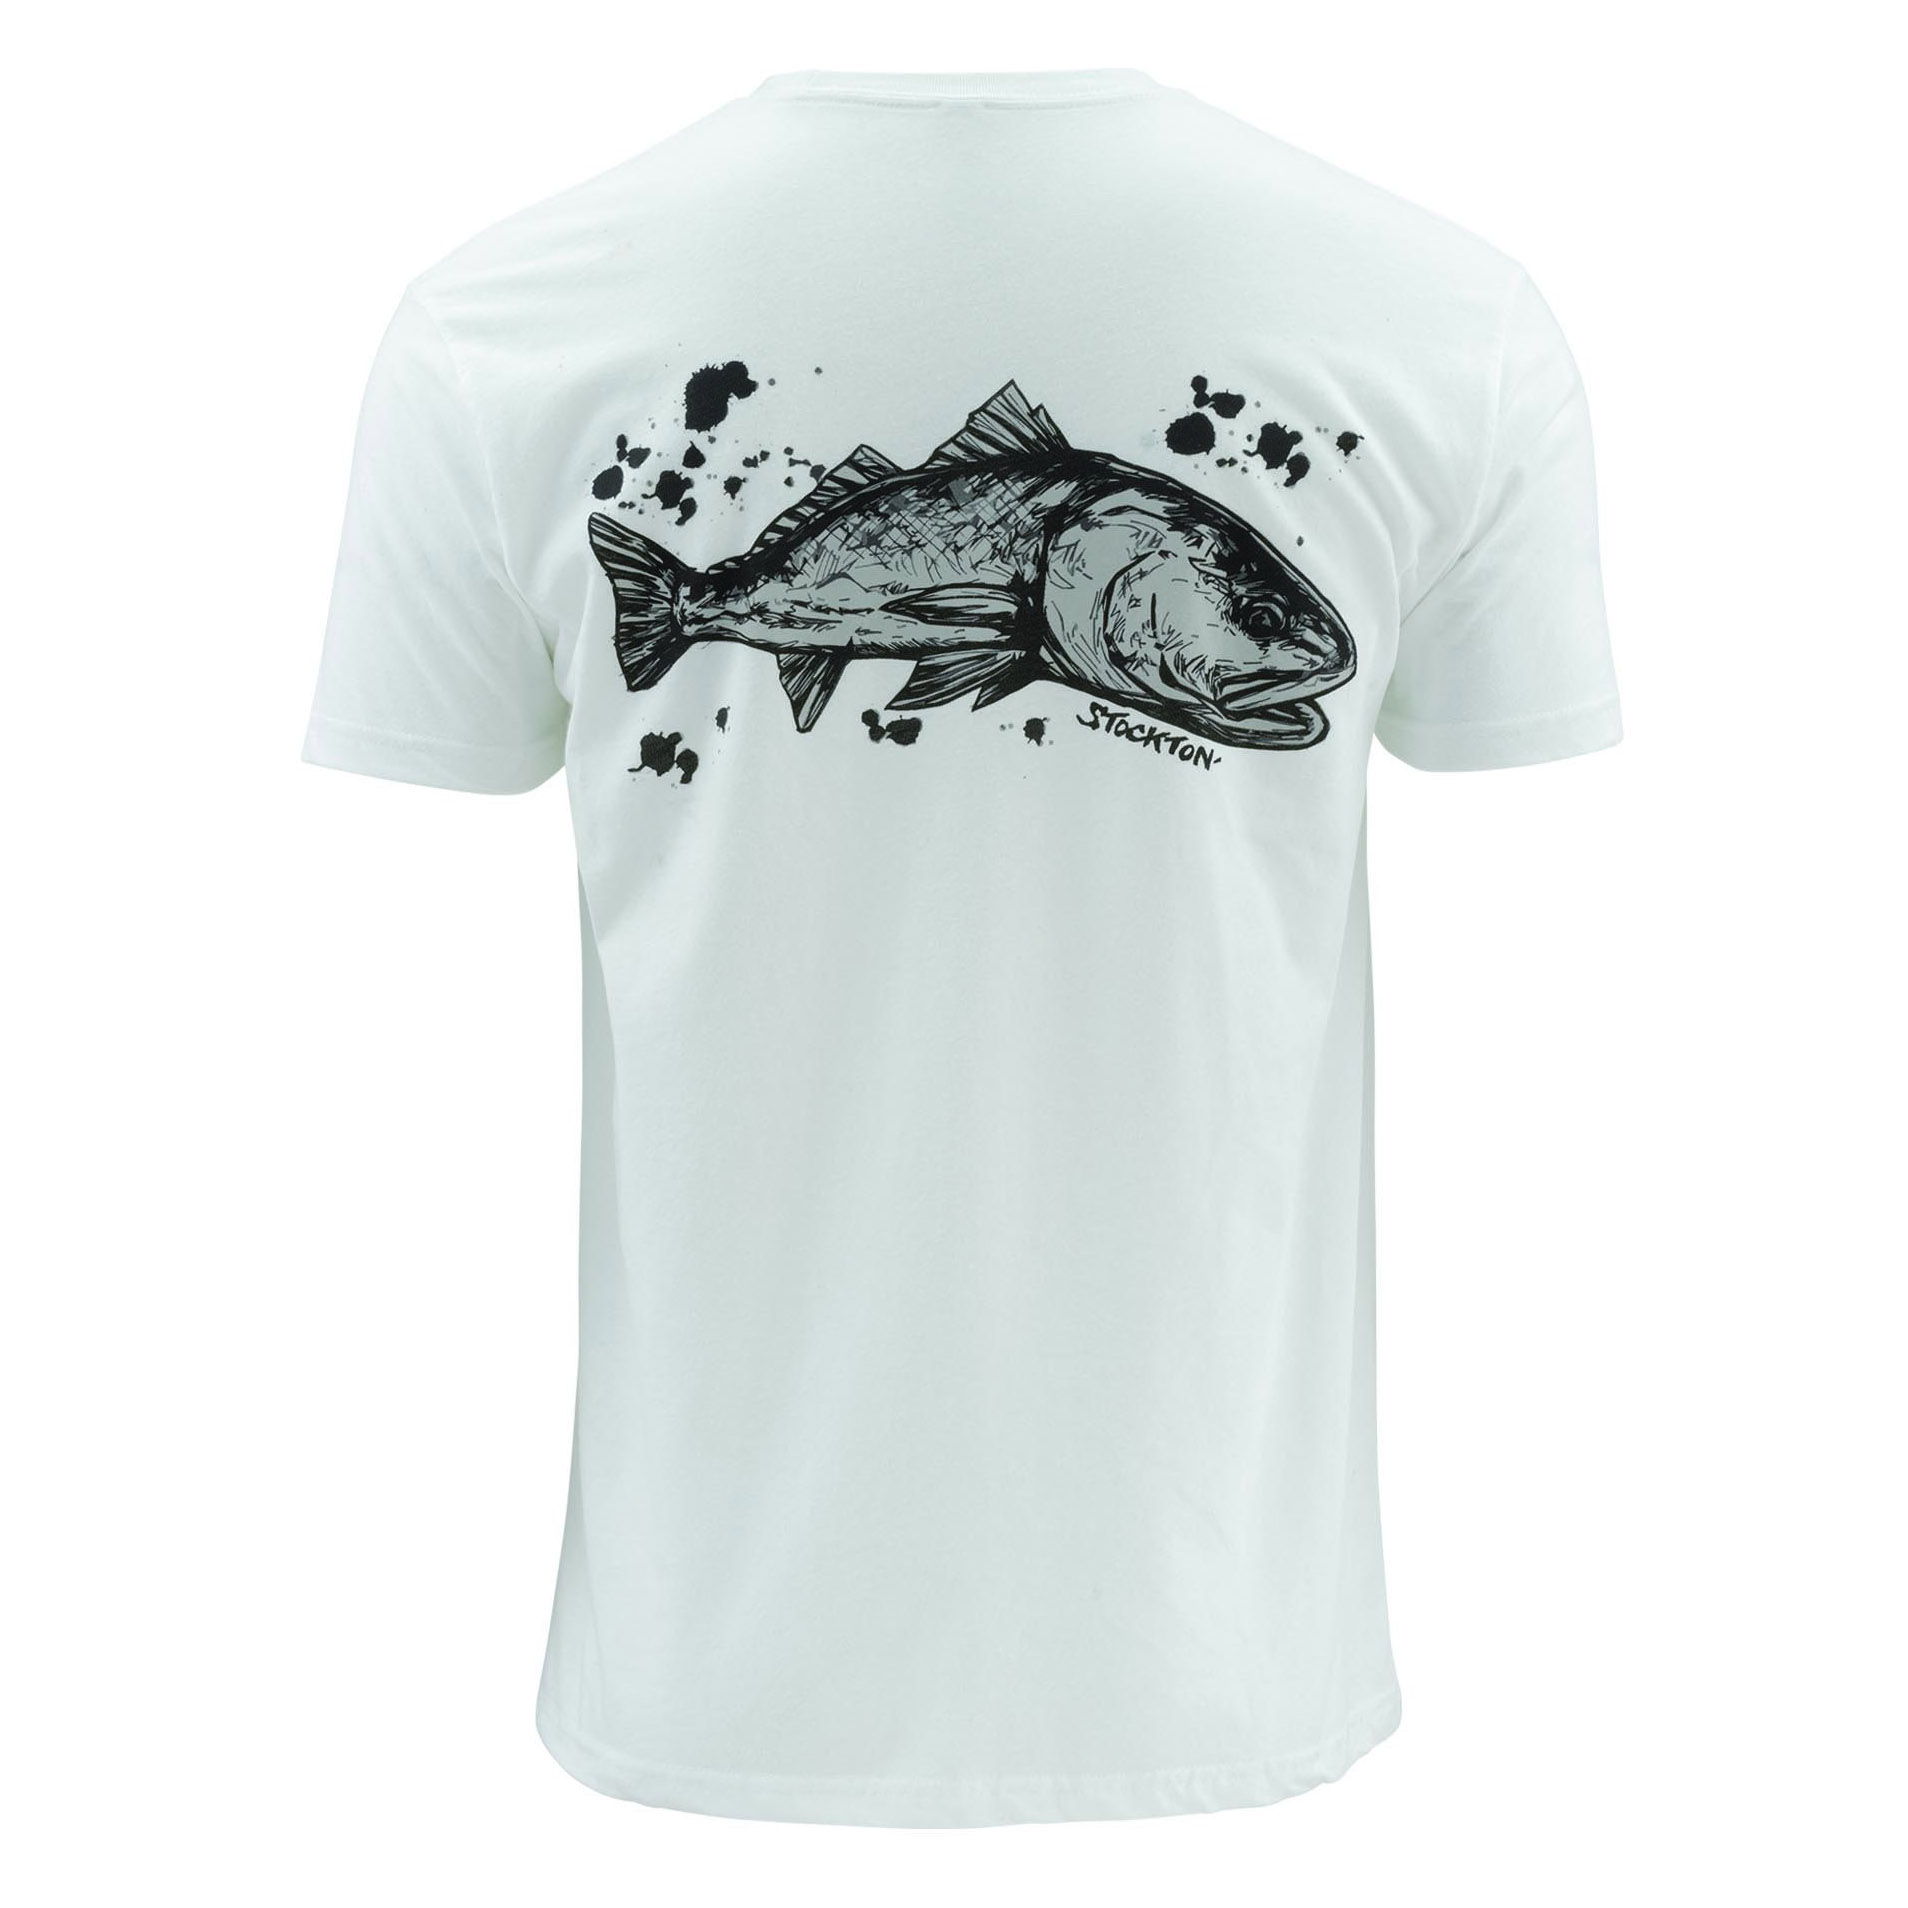 STOCKTON REDFISH T-SHIRT